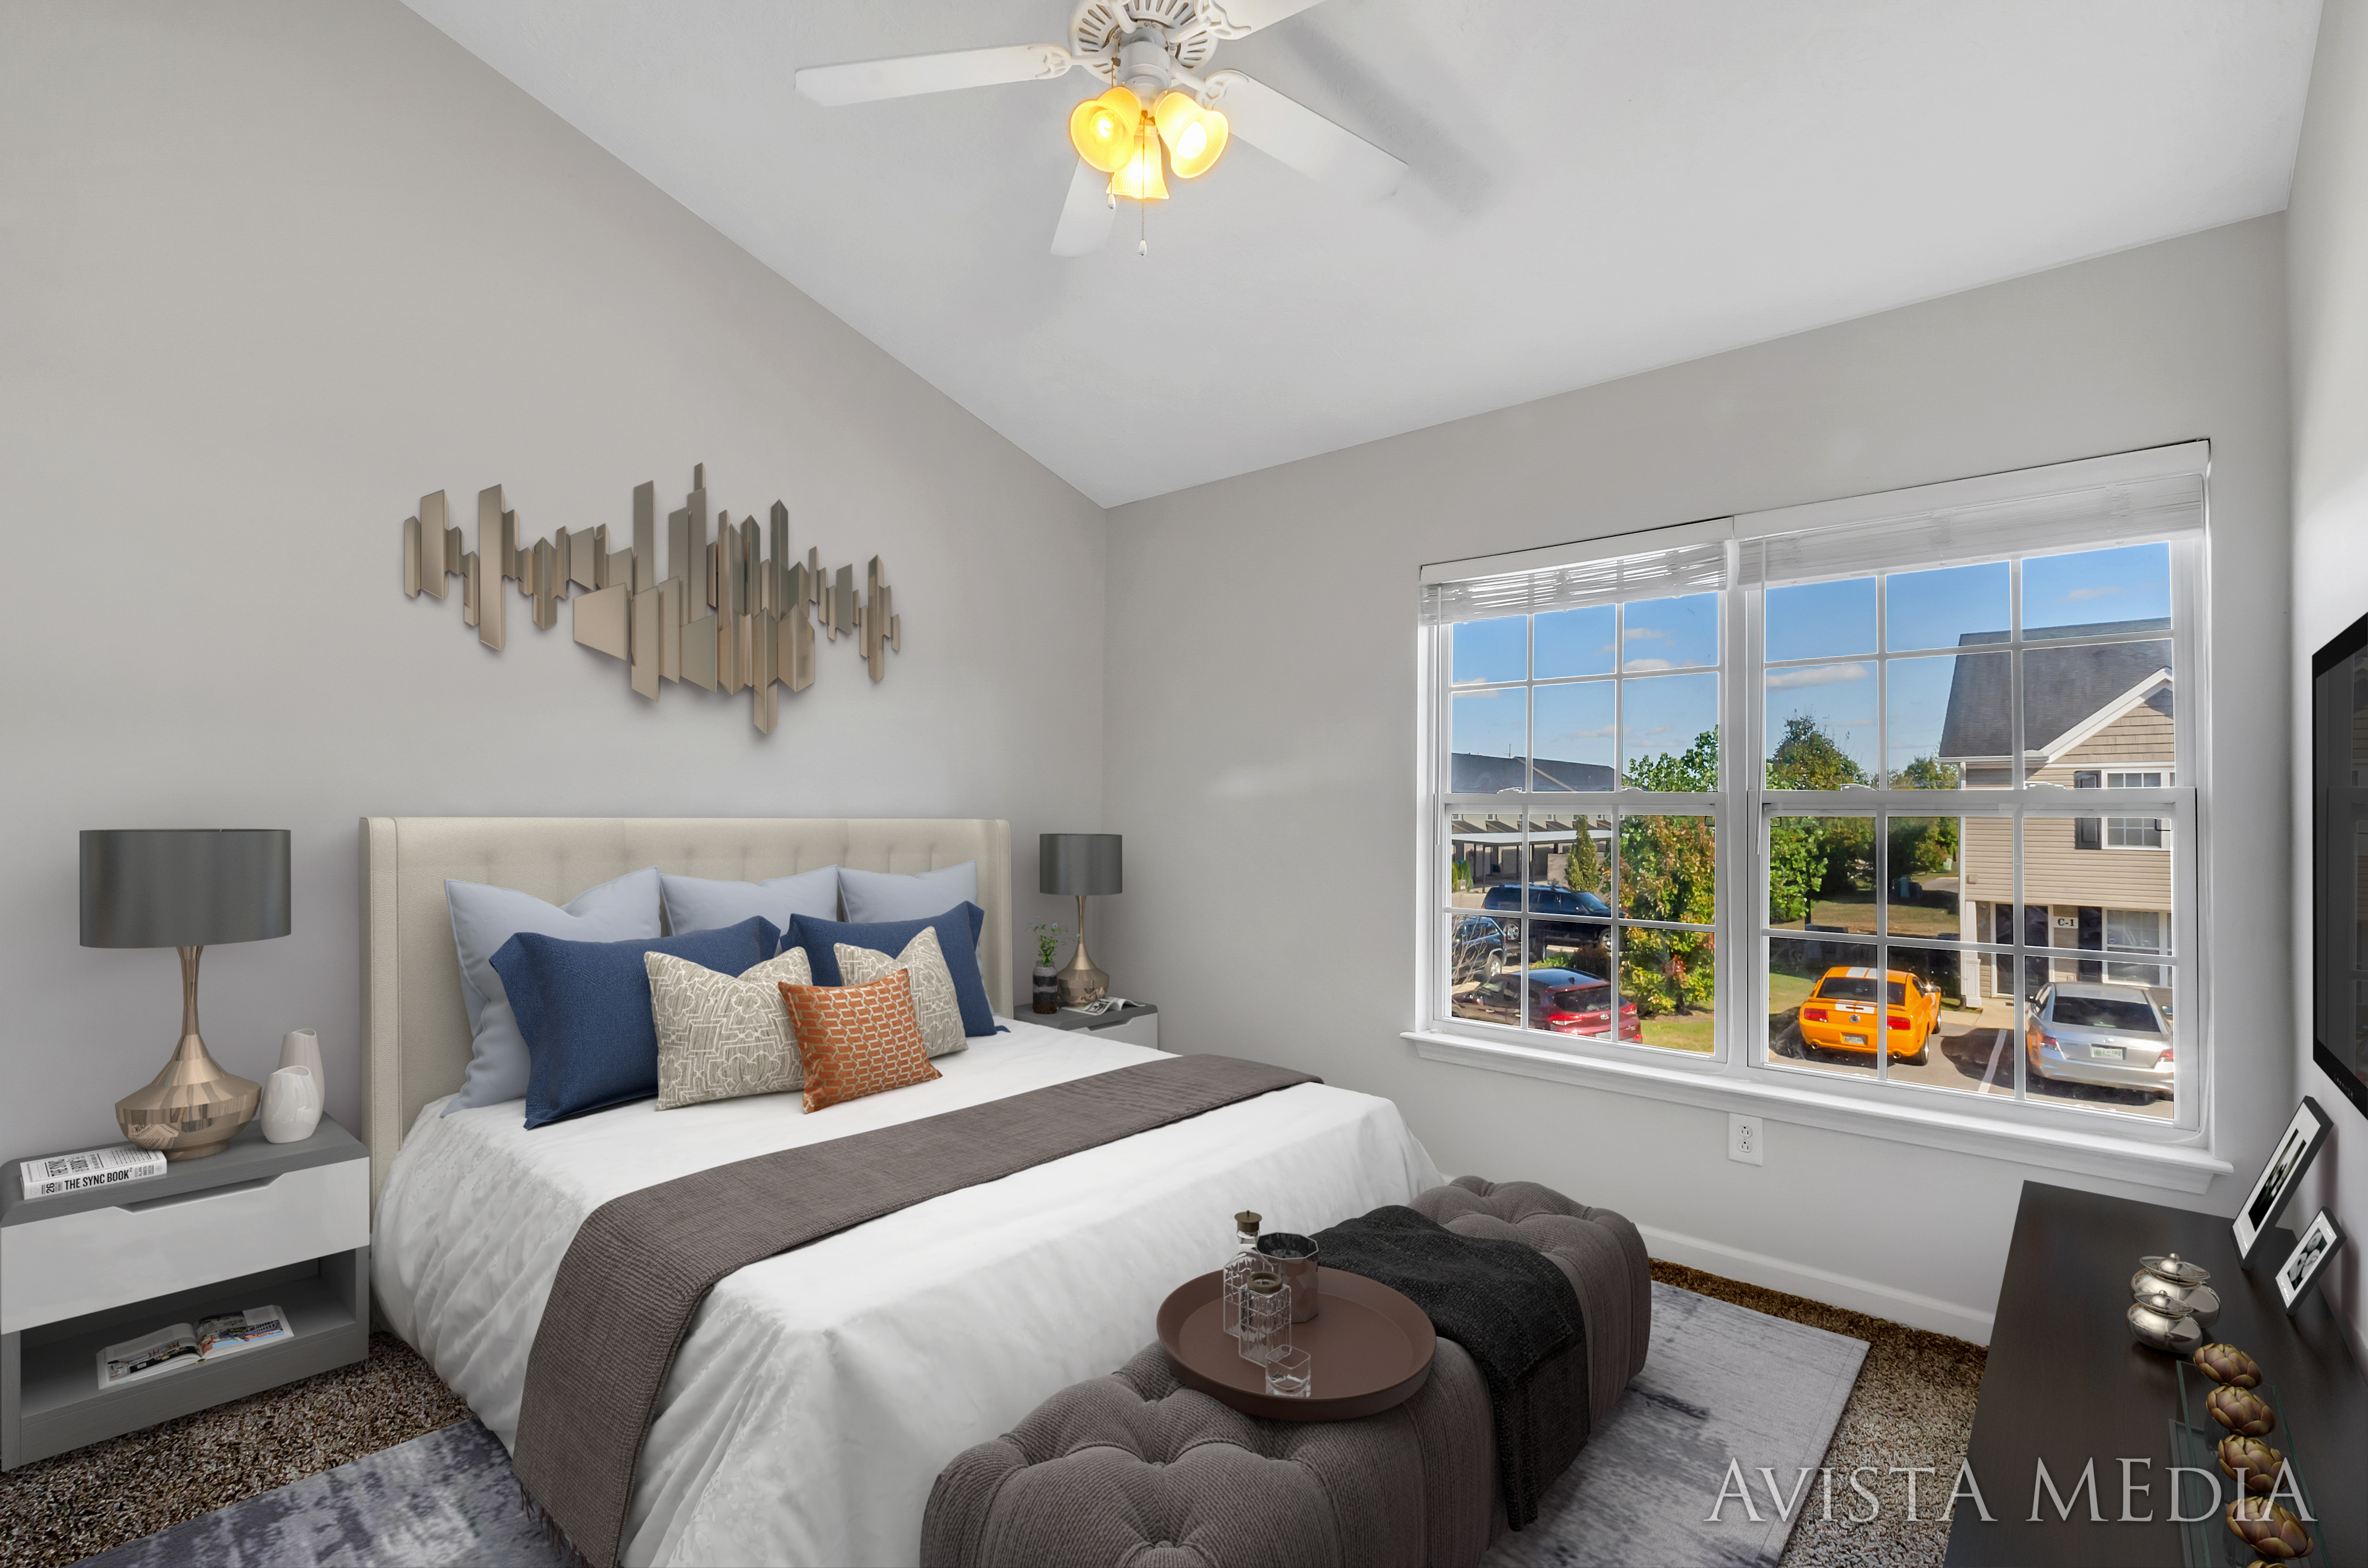 Signature HDR Real Estate Photography by Avista Media - Virtual Staging